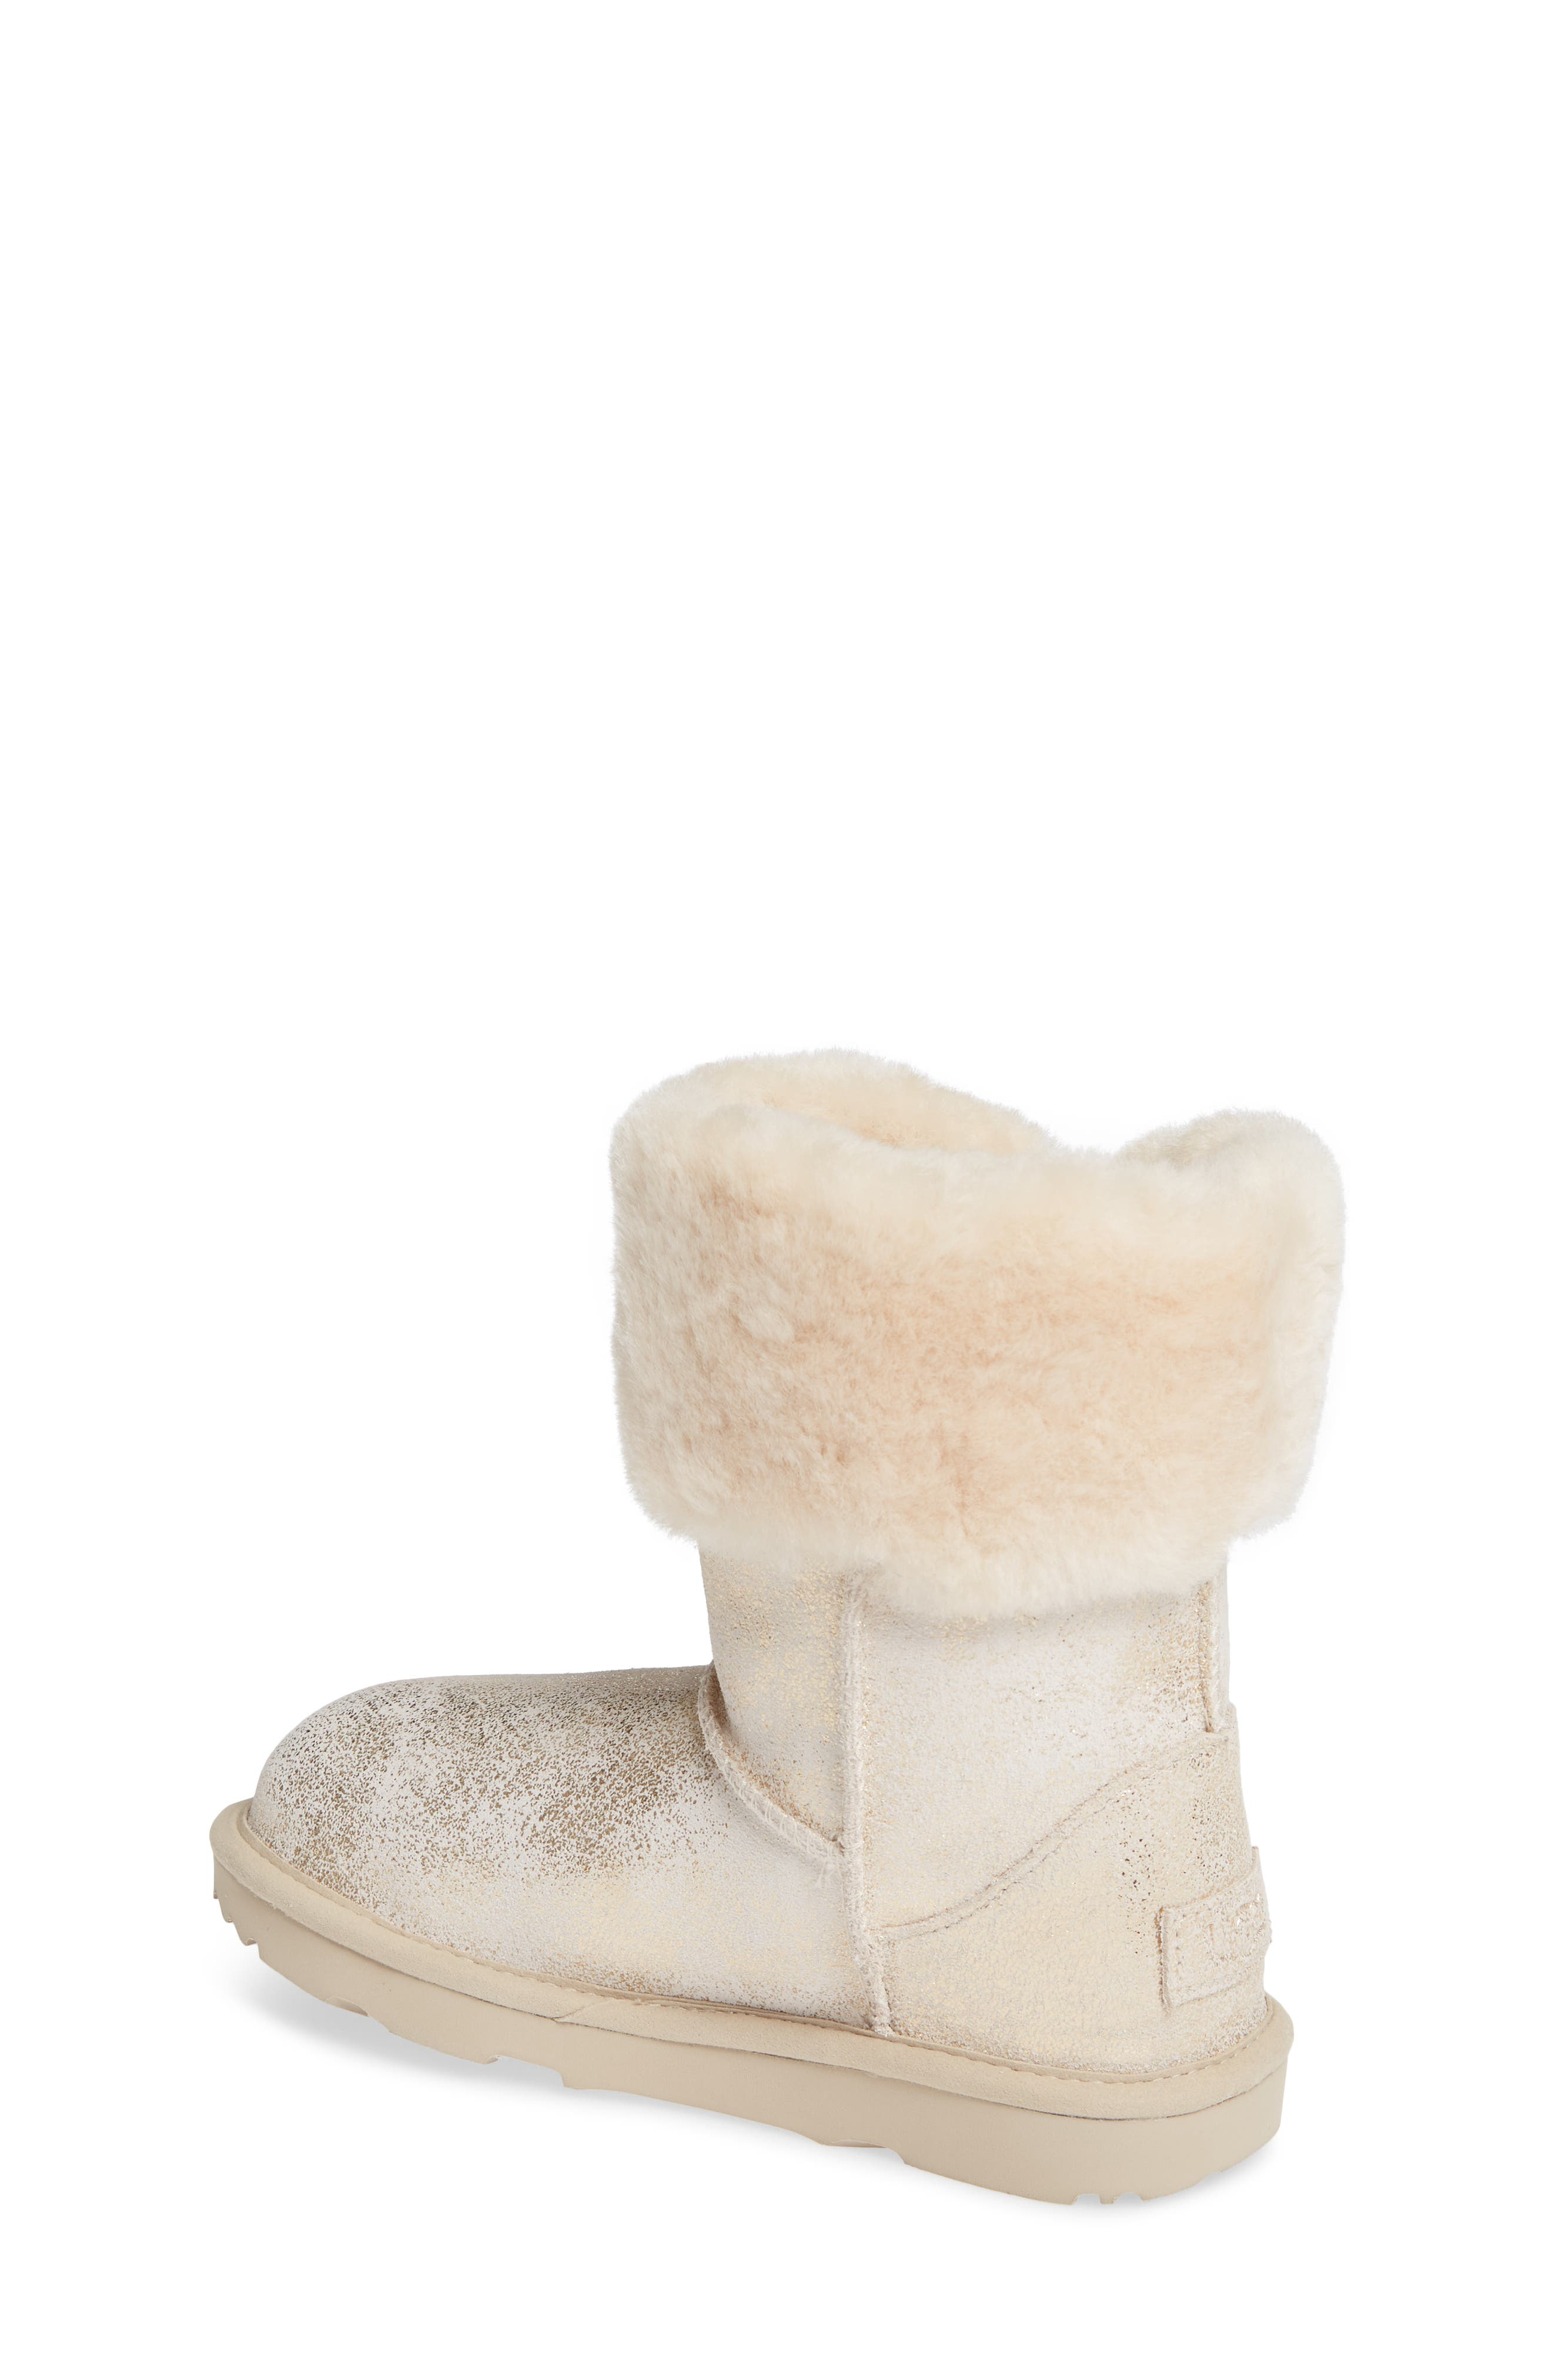 Ramona II Classic Short Boot,                             Alternate thumbnail 2, color,                             GOLD